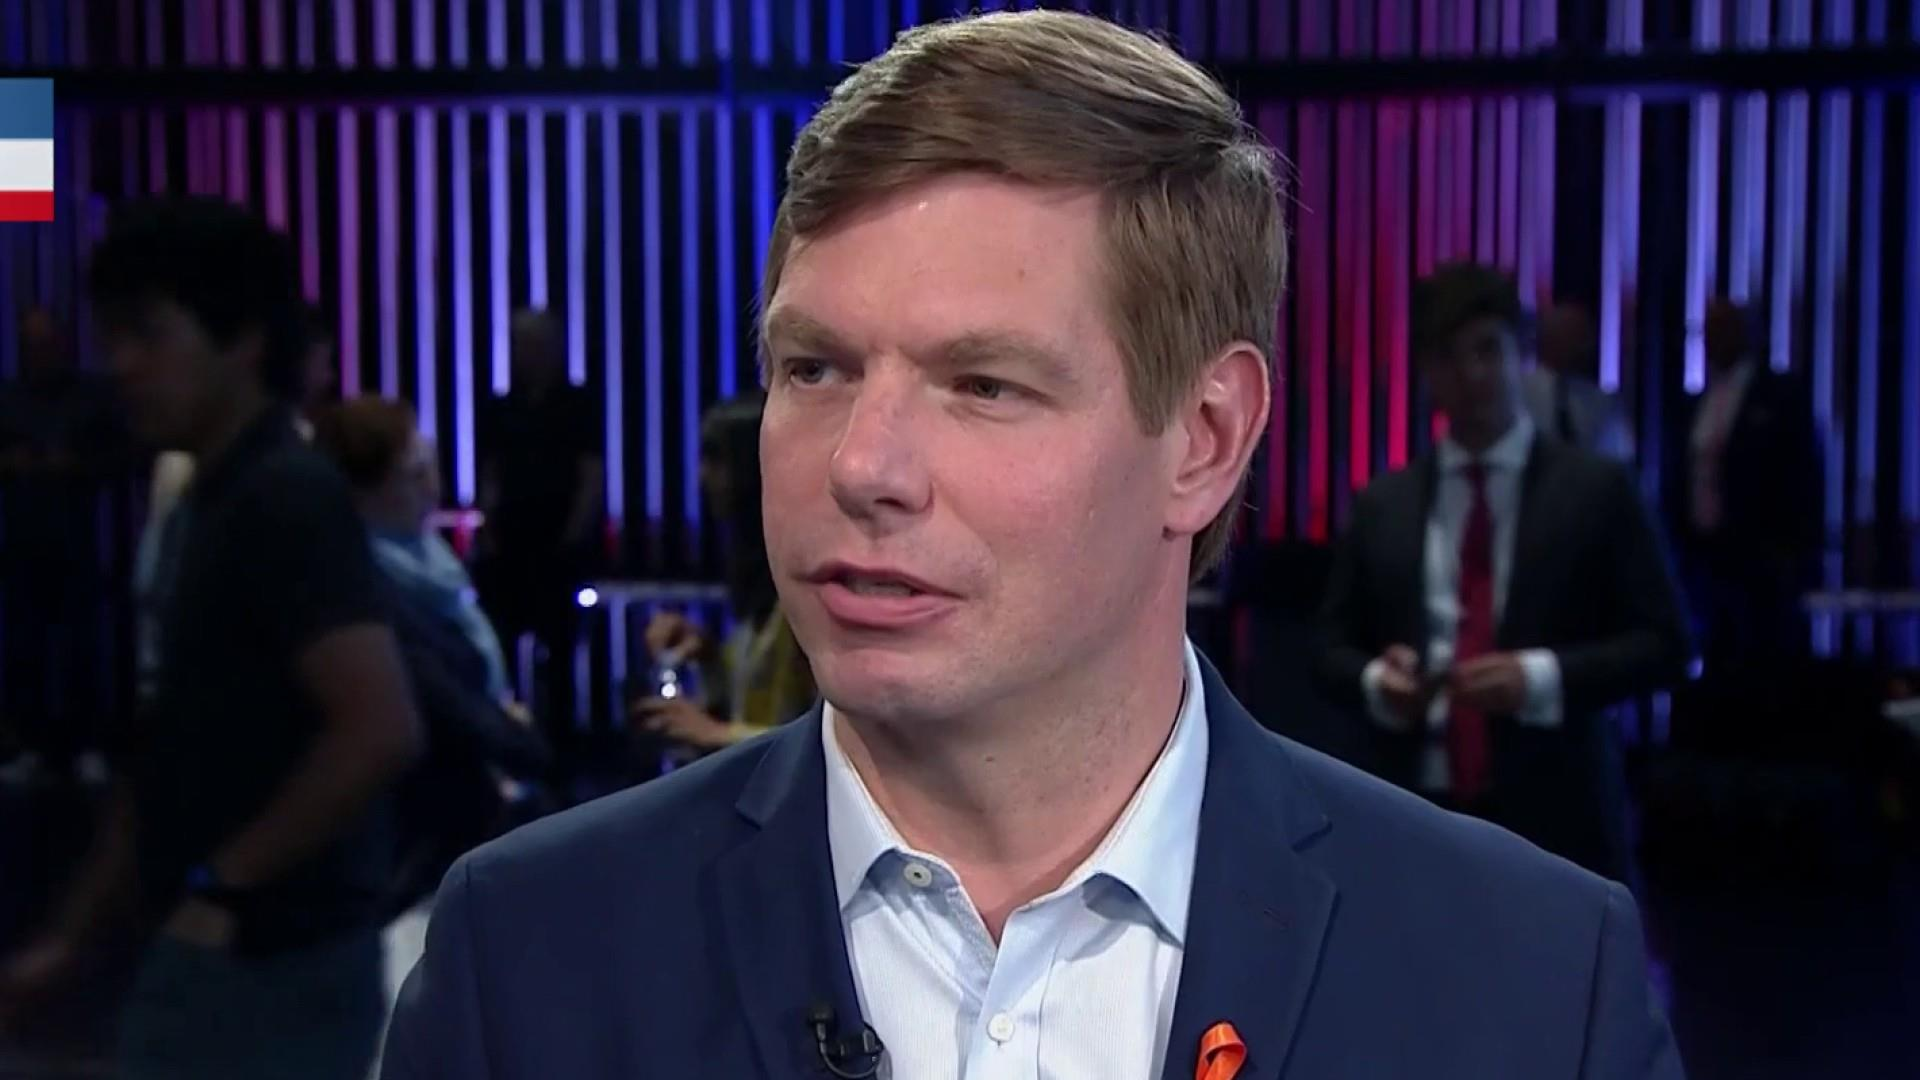 'Mind boggling': Swalwell hits rivals for ducking Trump in debate